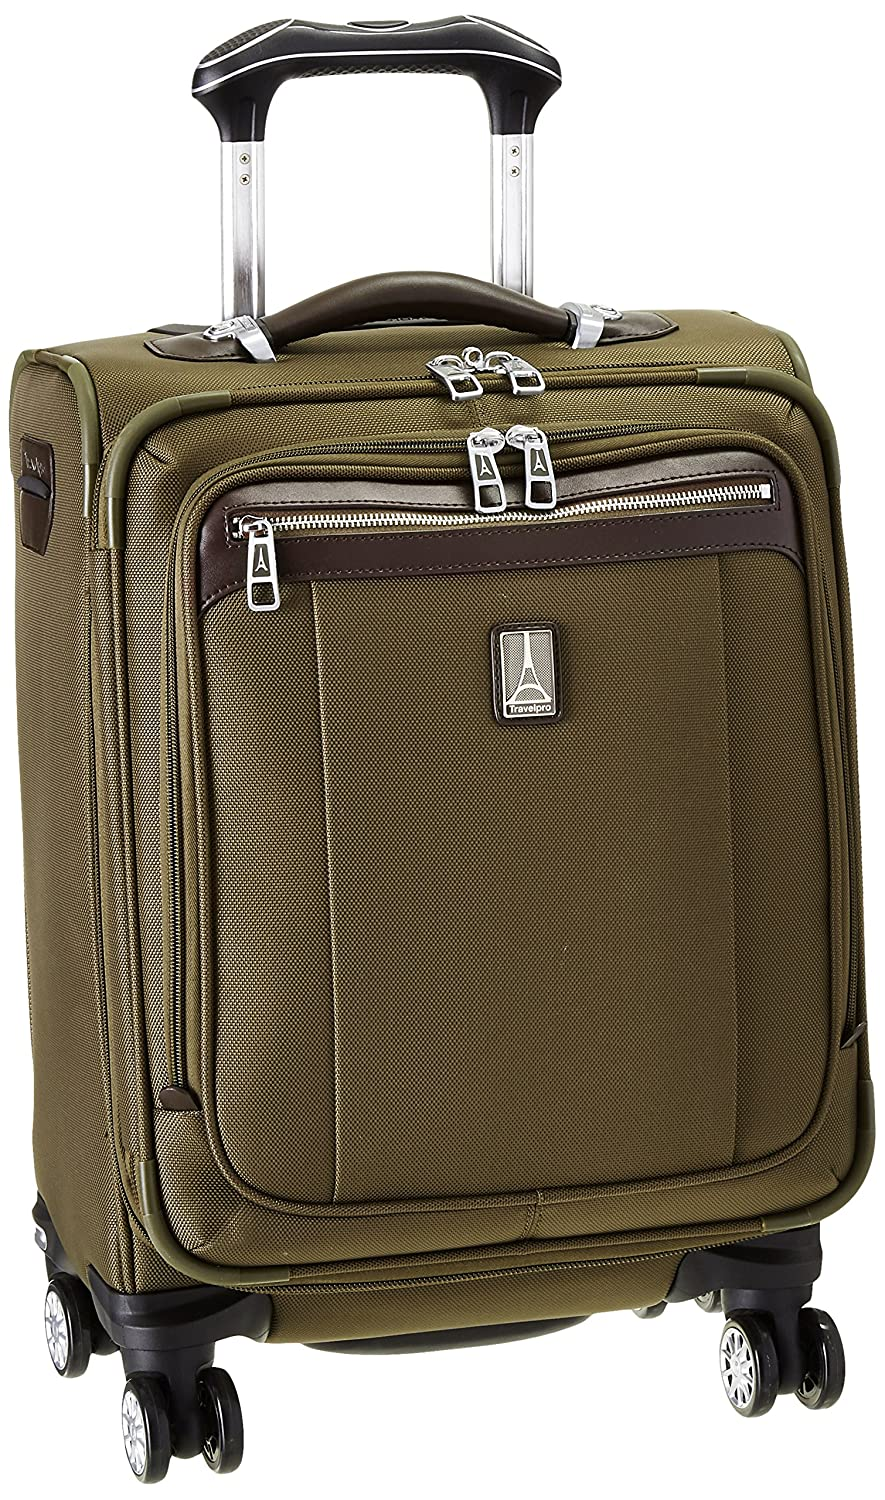 Travelpro PlatinumMagna2 International Carry On Expandable Spinner Carry On Suitcase, 20 In., Olive by Travelpro